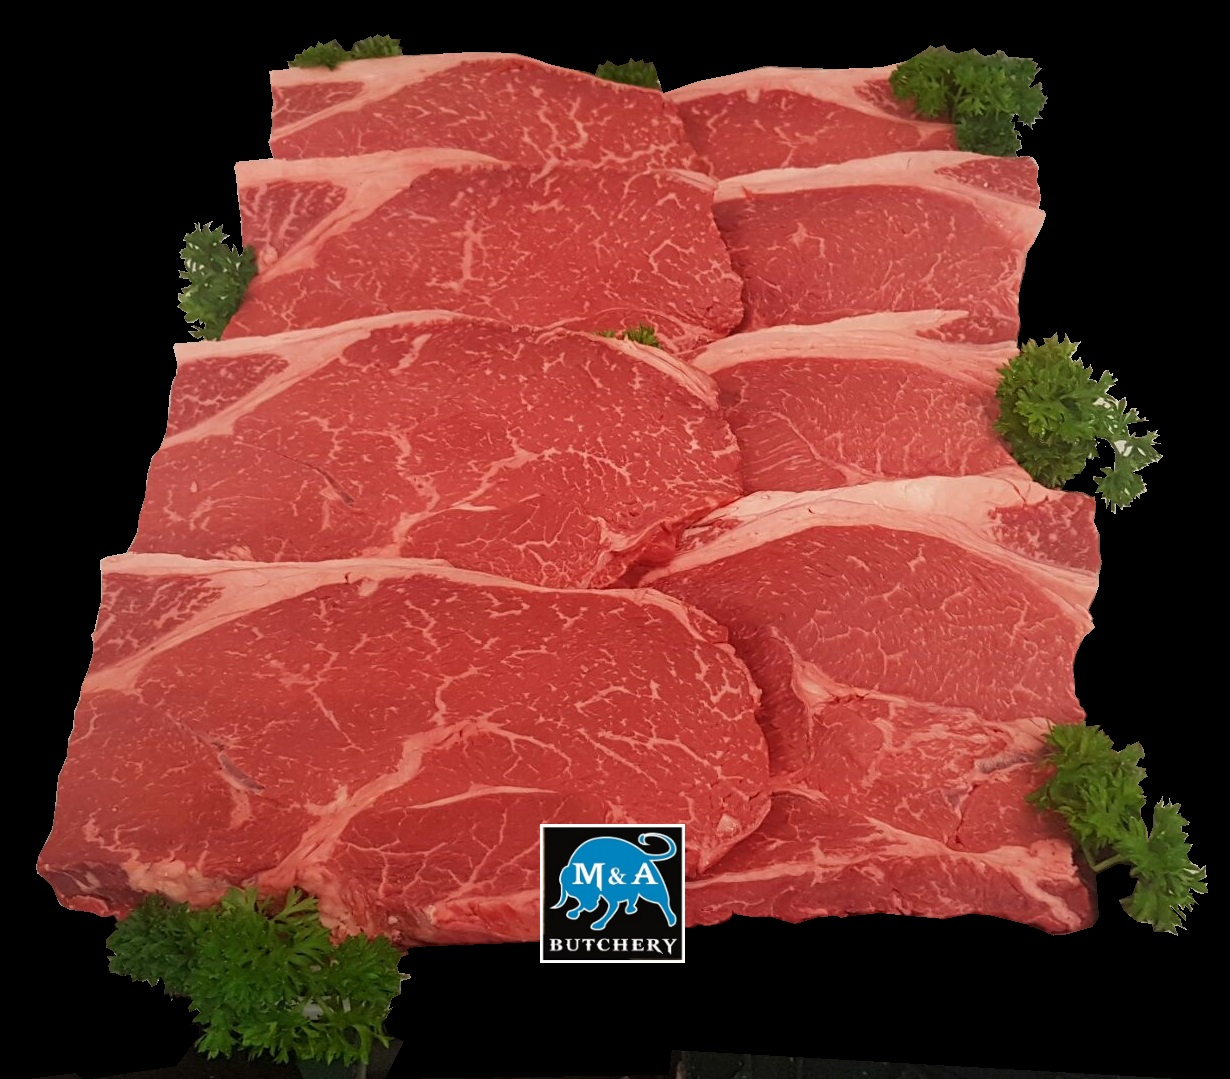 Wagyu Rump Steak mb4-5 with Logo